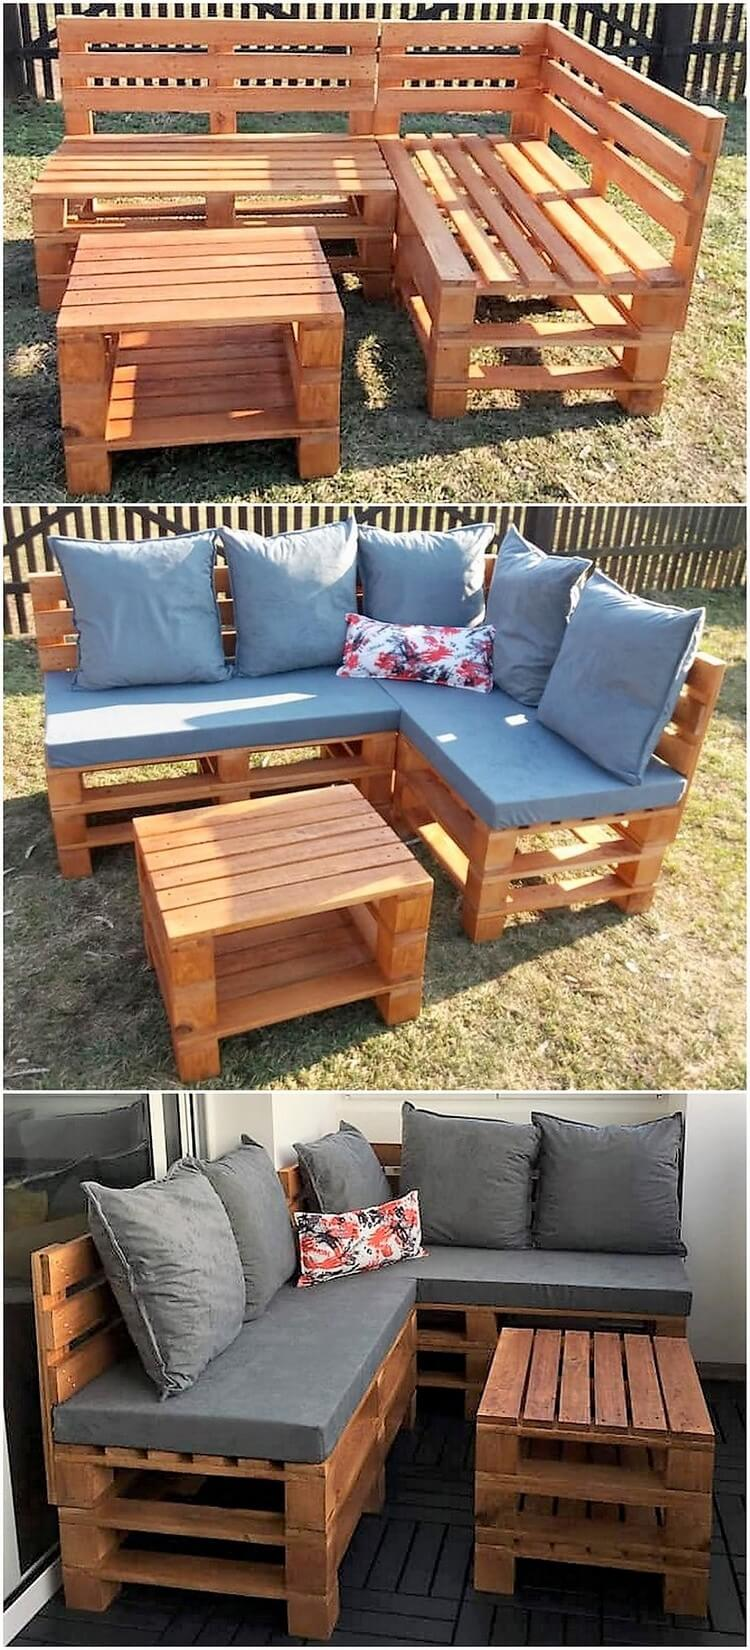 Pallet Couch and Table Design